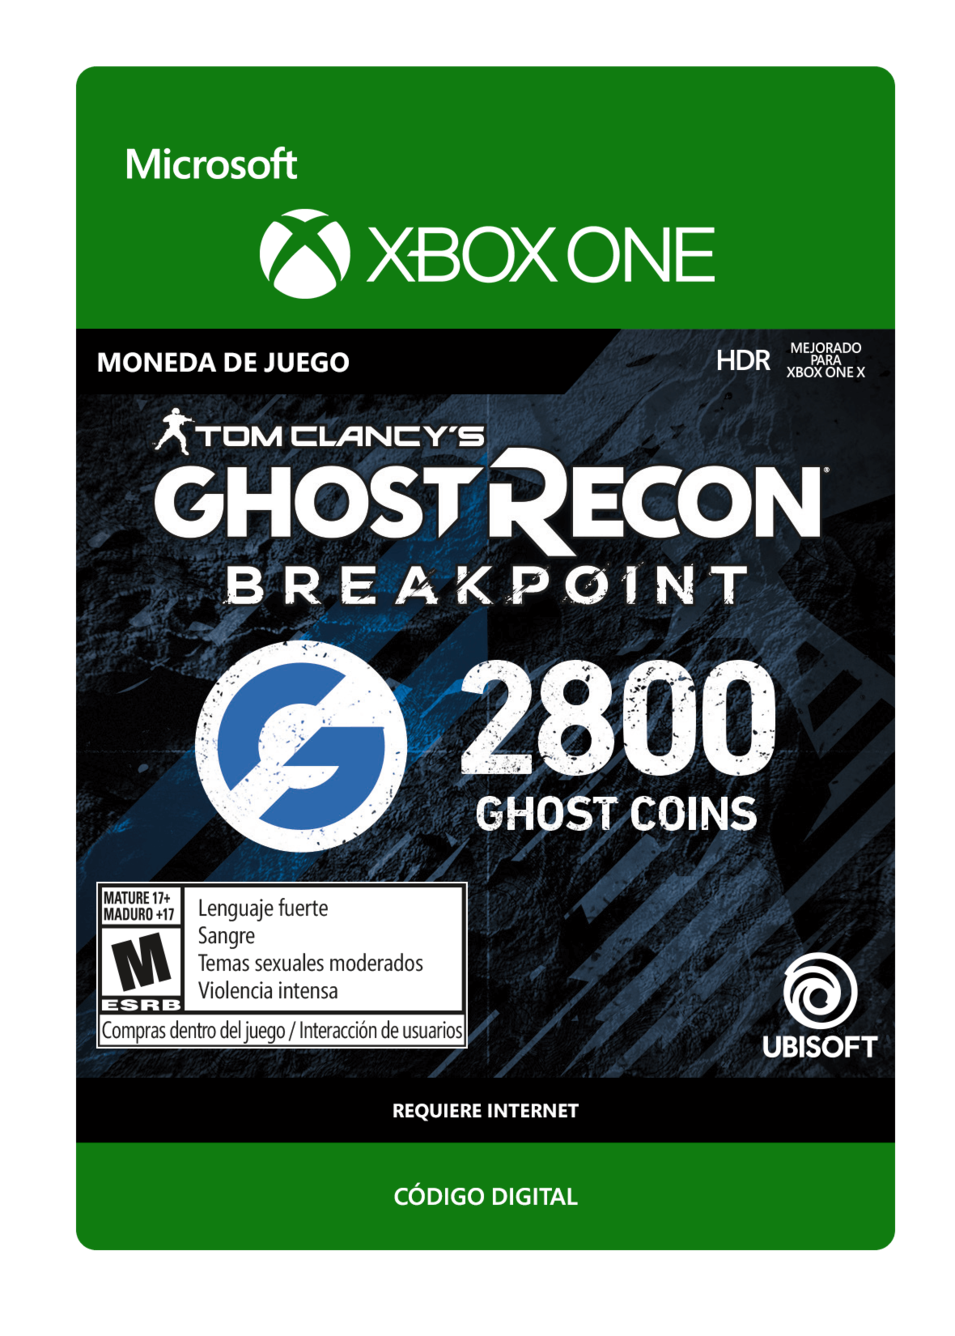 Tom Clancy s Ghost Recon Breakpoint 2800 Ghost coins